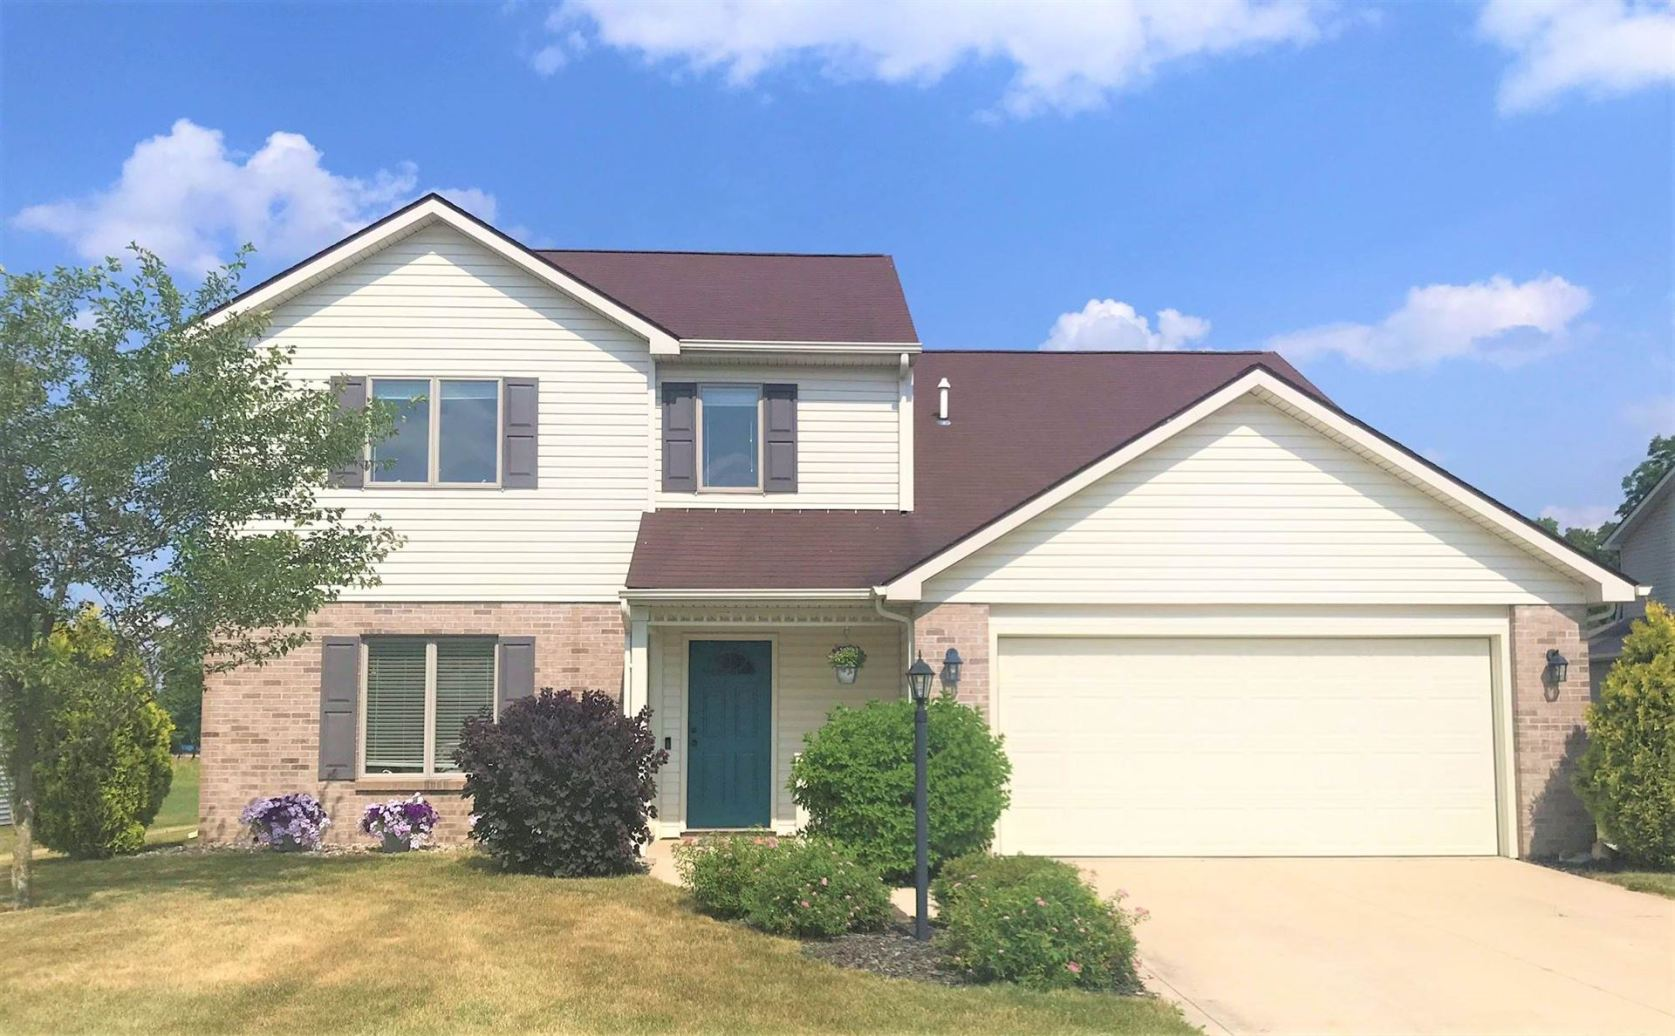 Photo of 2202 Heather Court, Warsaw, IN 46580 (MLS # 202025681)